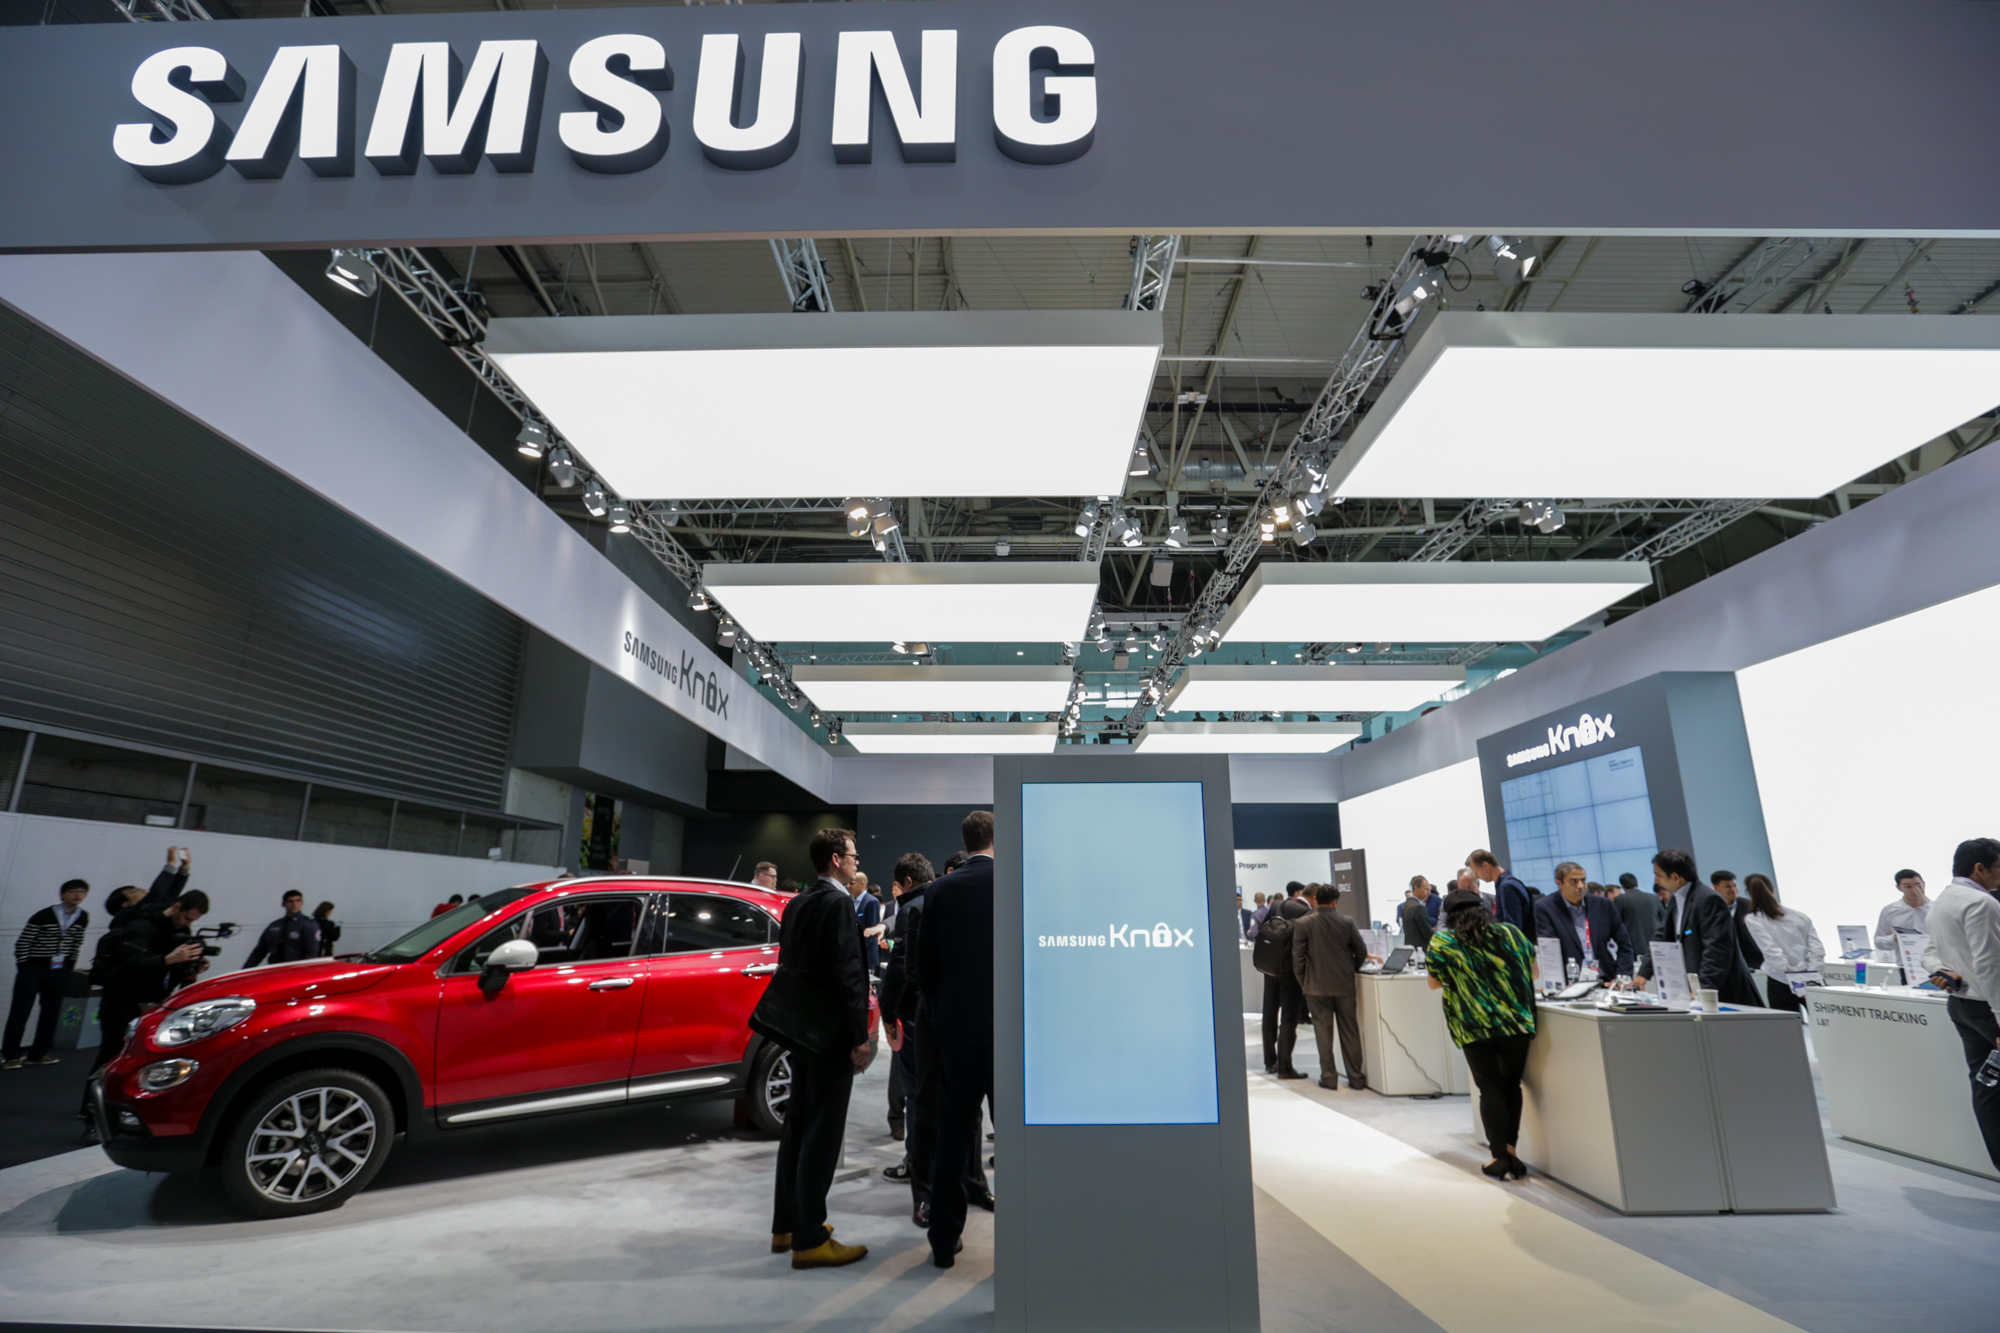 Samsung MWC16 - stand-Samsung Automotive